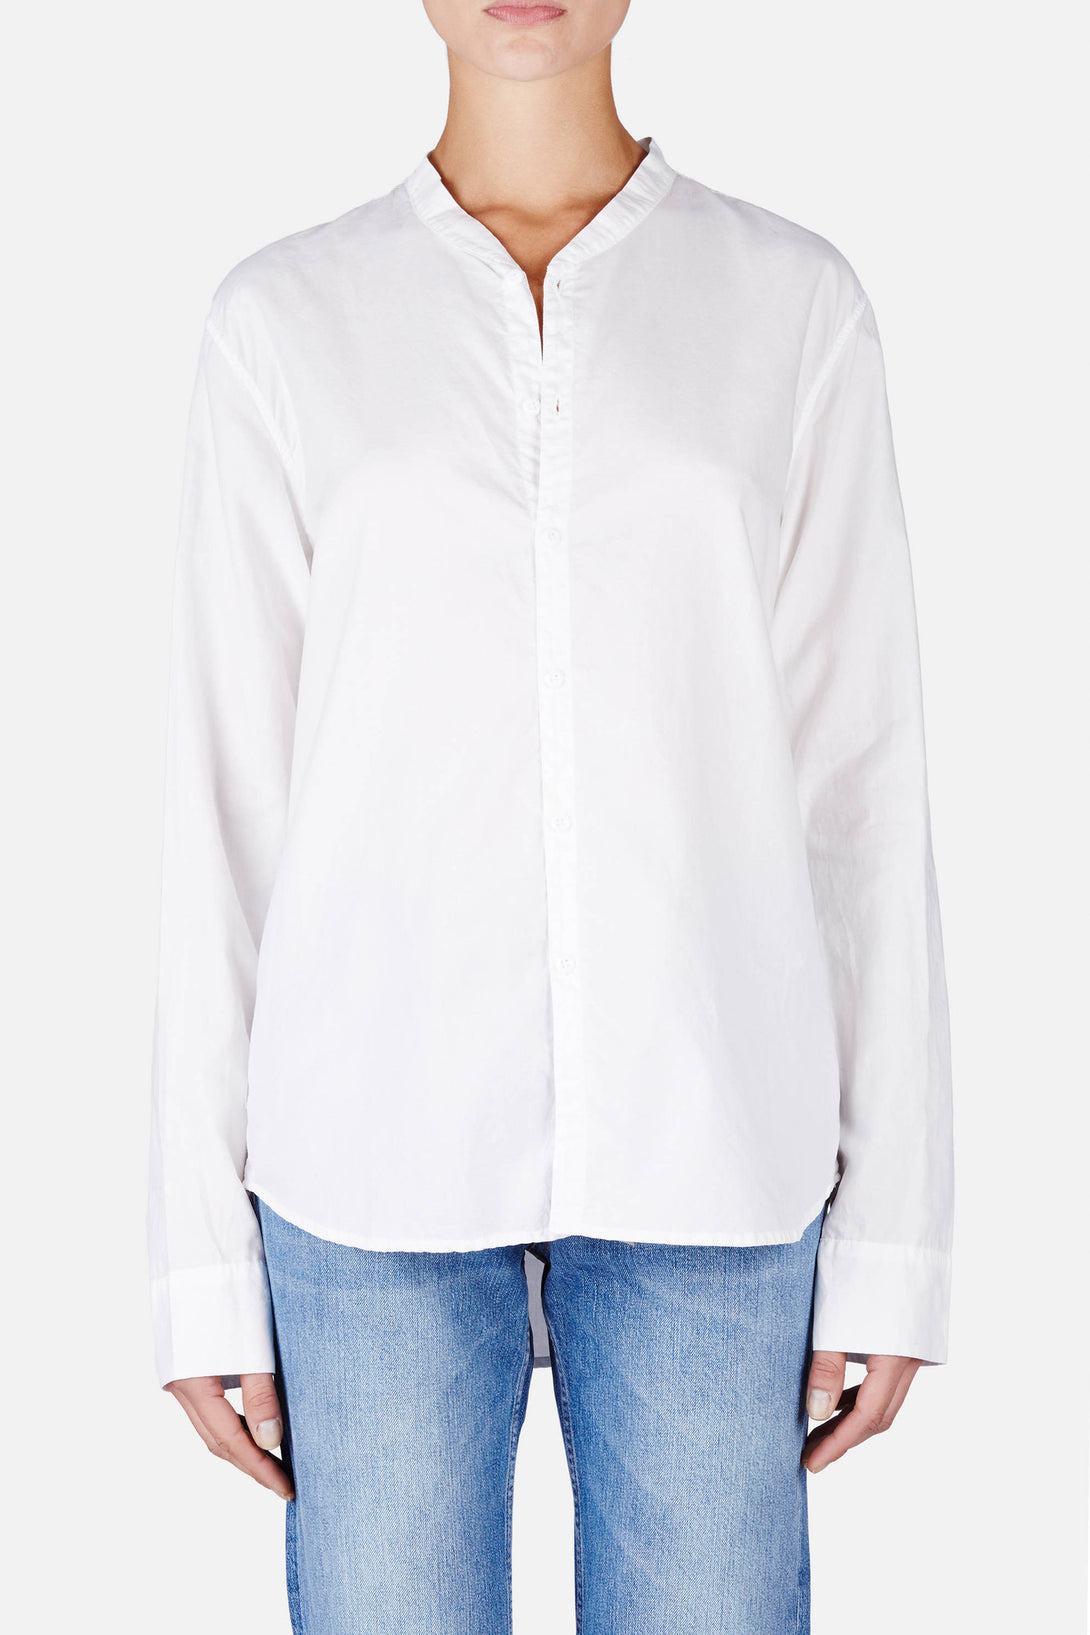 M.H. Uniform Shirt - White